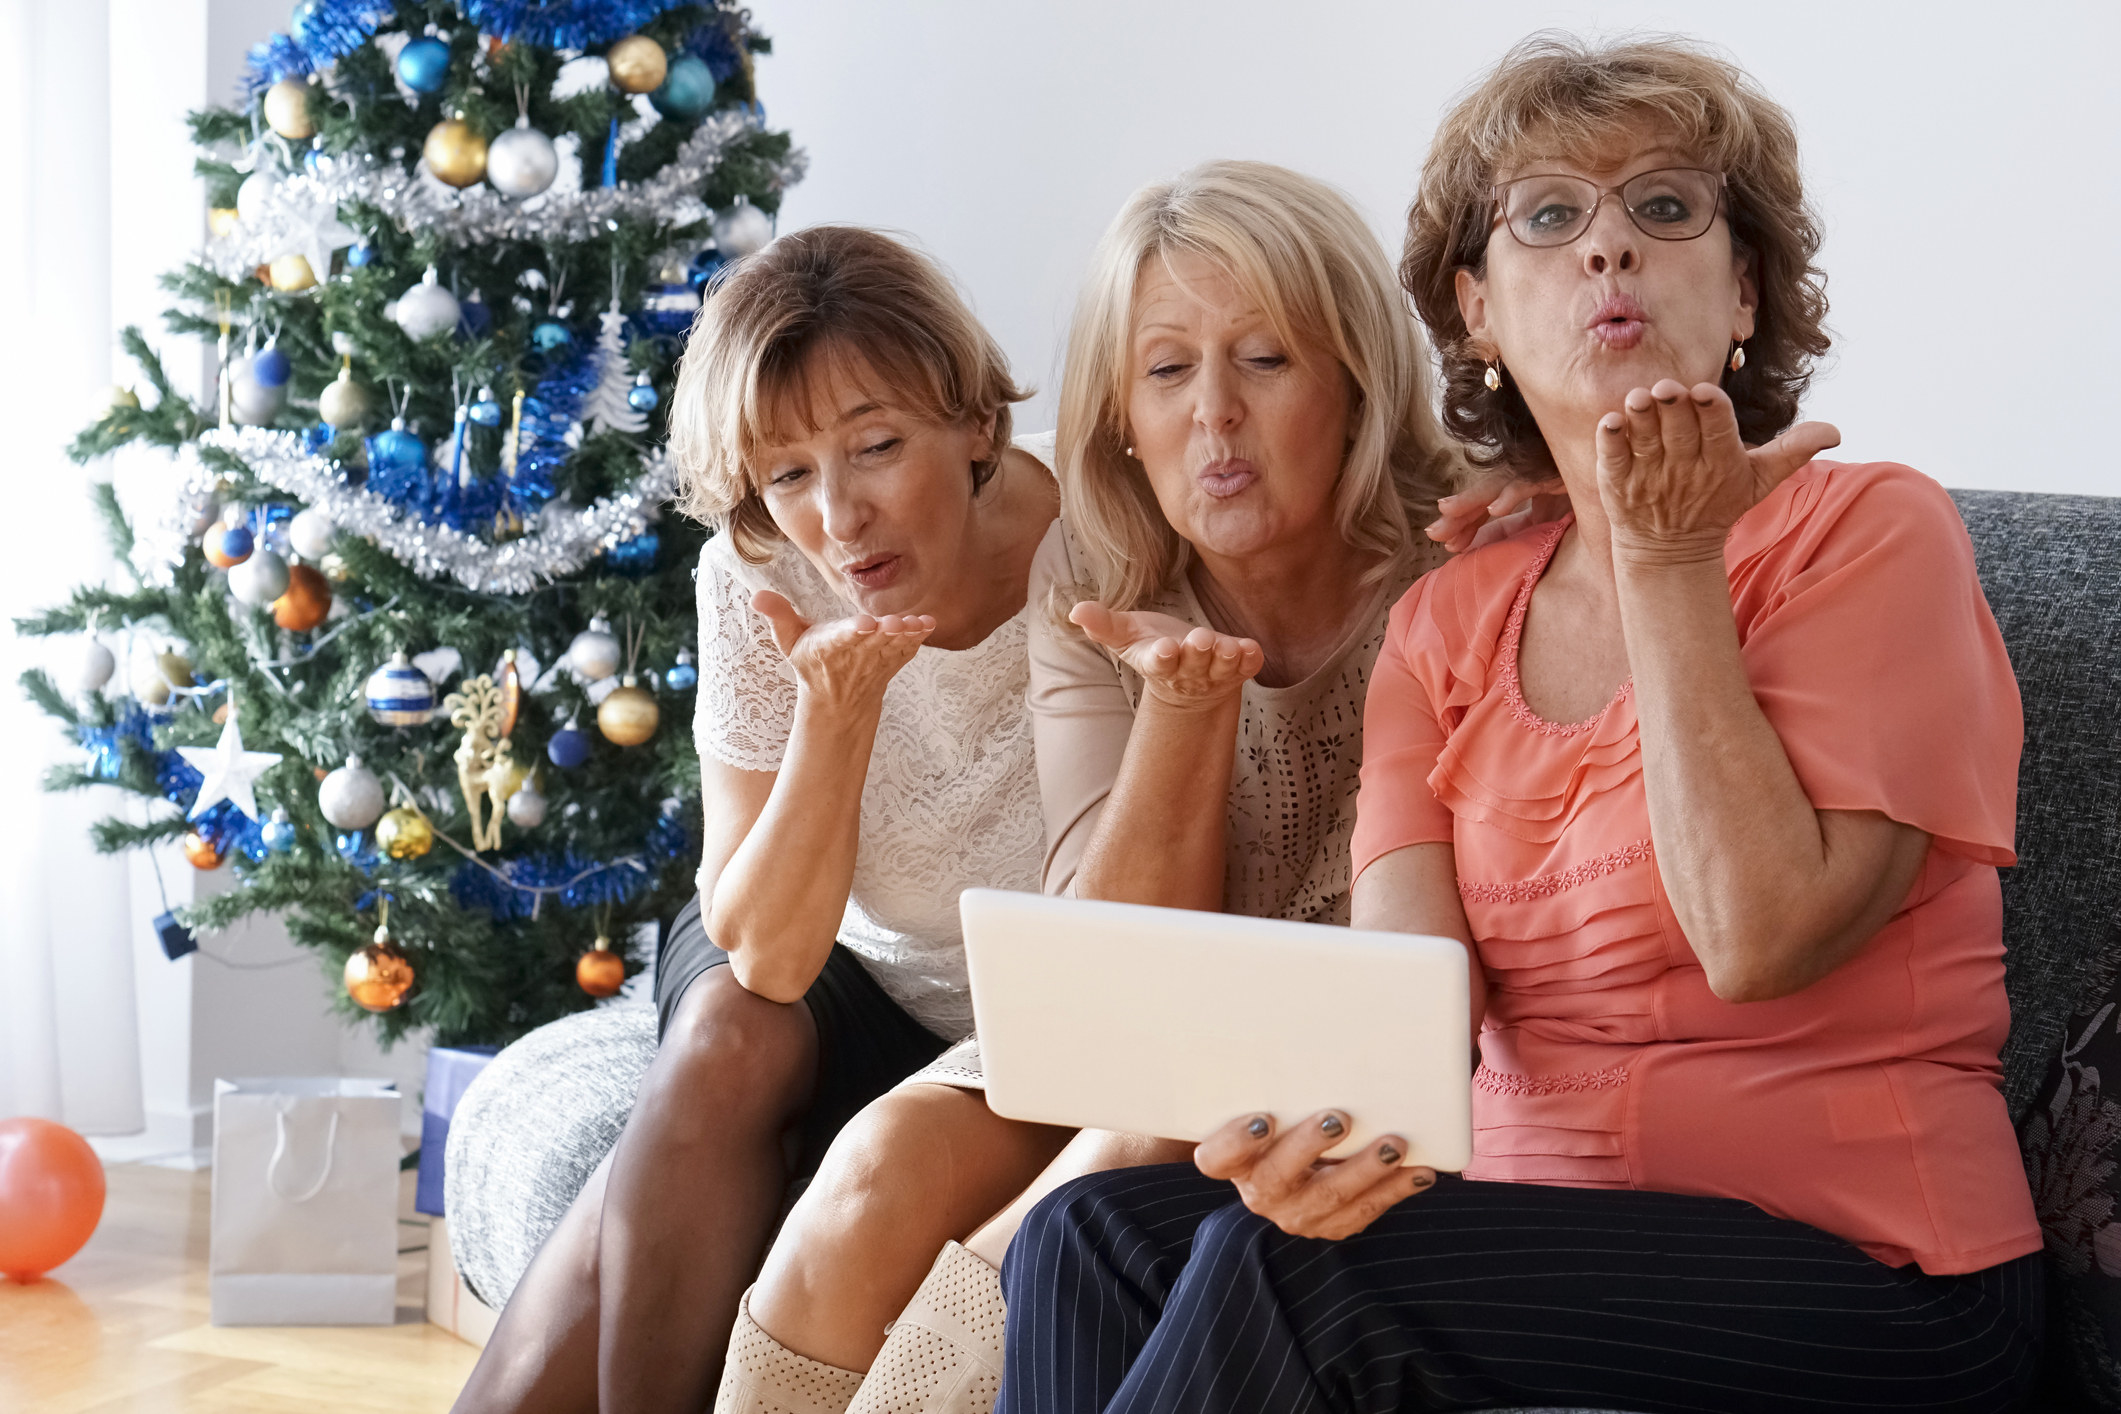 Three women sitting on a couch, with a Christmas tree in the background, blowing kisses